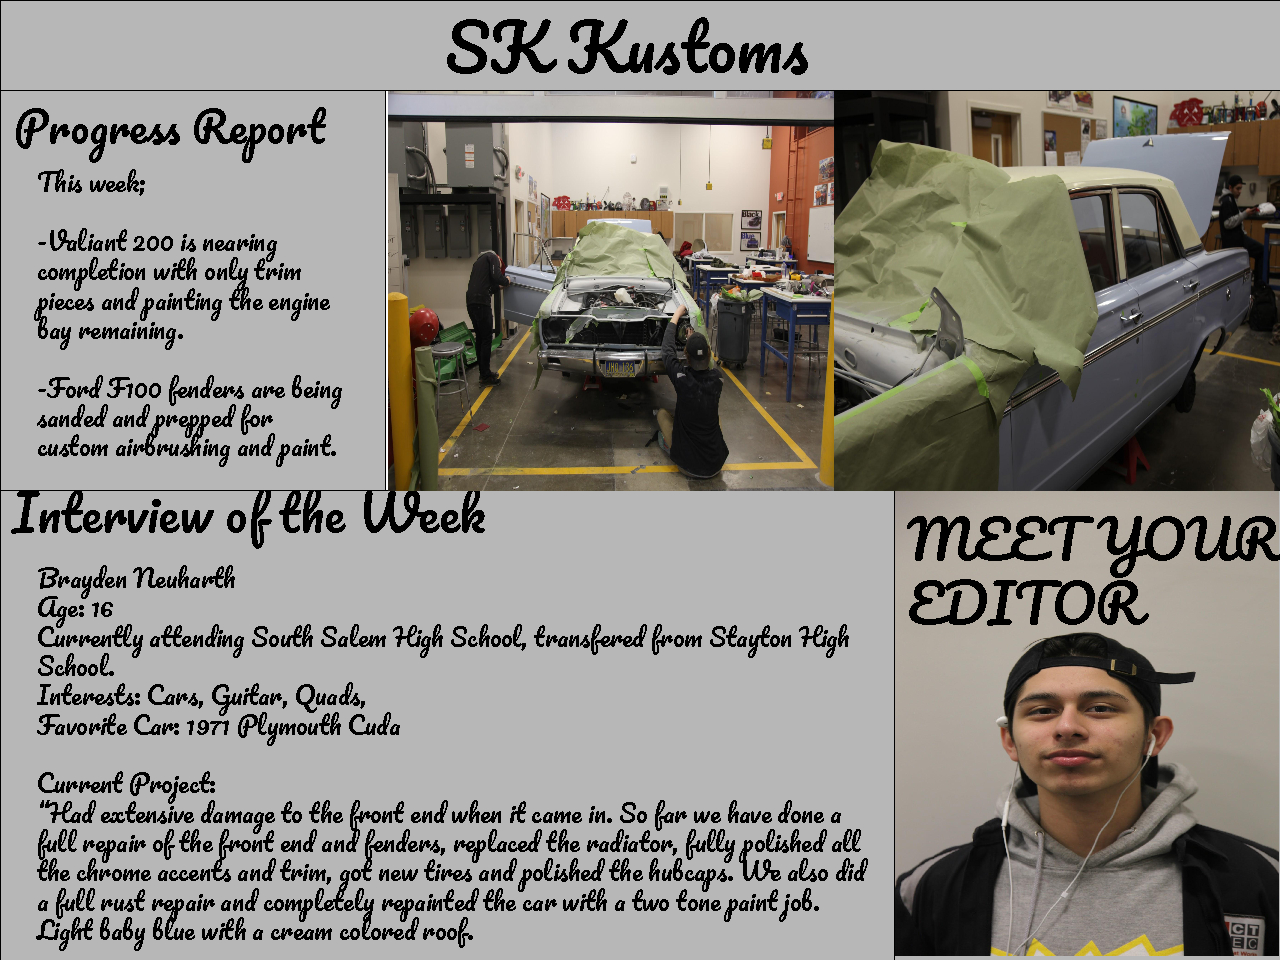 SK Kustoms Newsletter - Progress Report, Interview of the Week